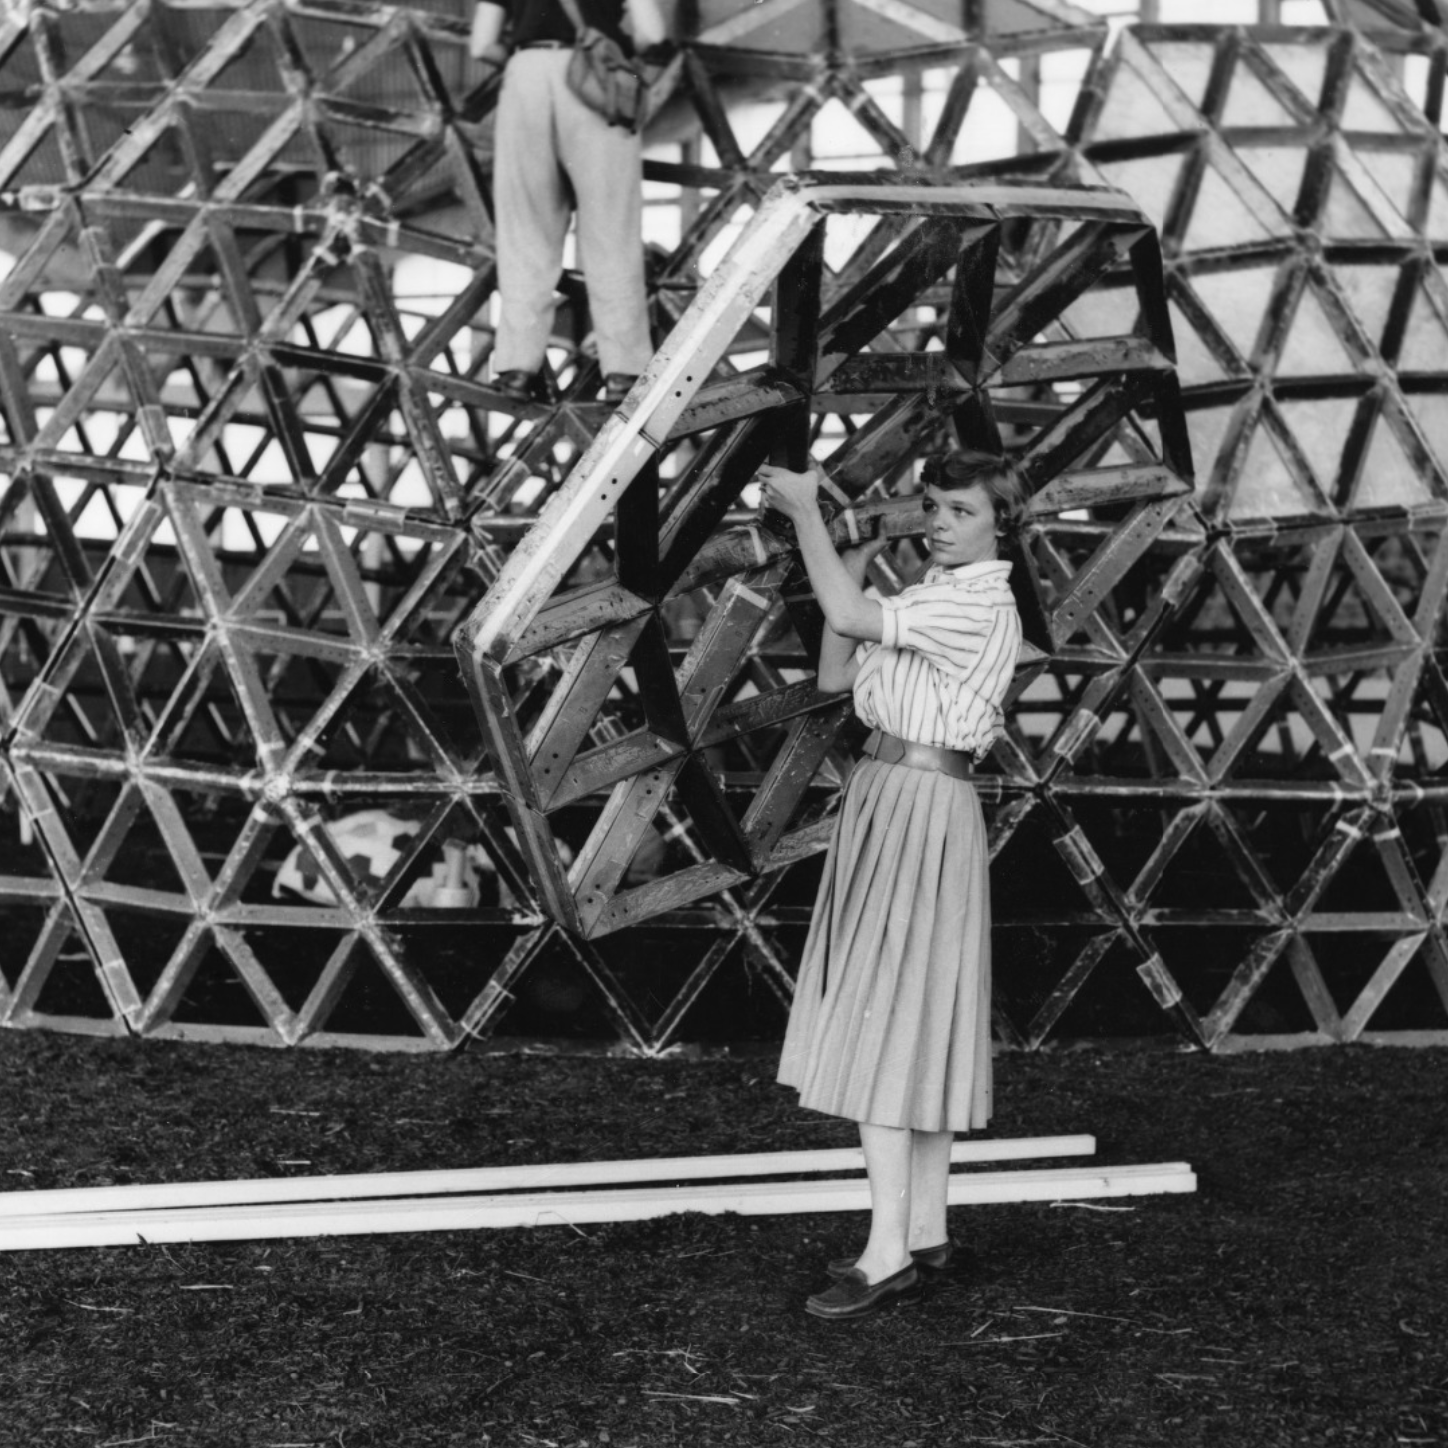 Throwback Thursday To Jean Mackensie Jenkins Holding A Hexagonal Piece To Be Placed On Geodesic Dome Structure At Ncsu S Dome Structure Geodesic Dome Geodesic